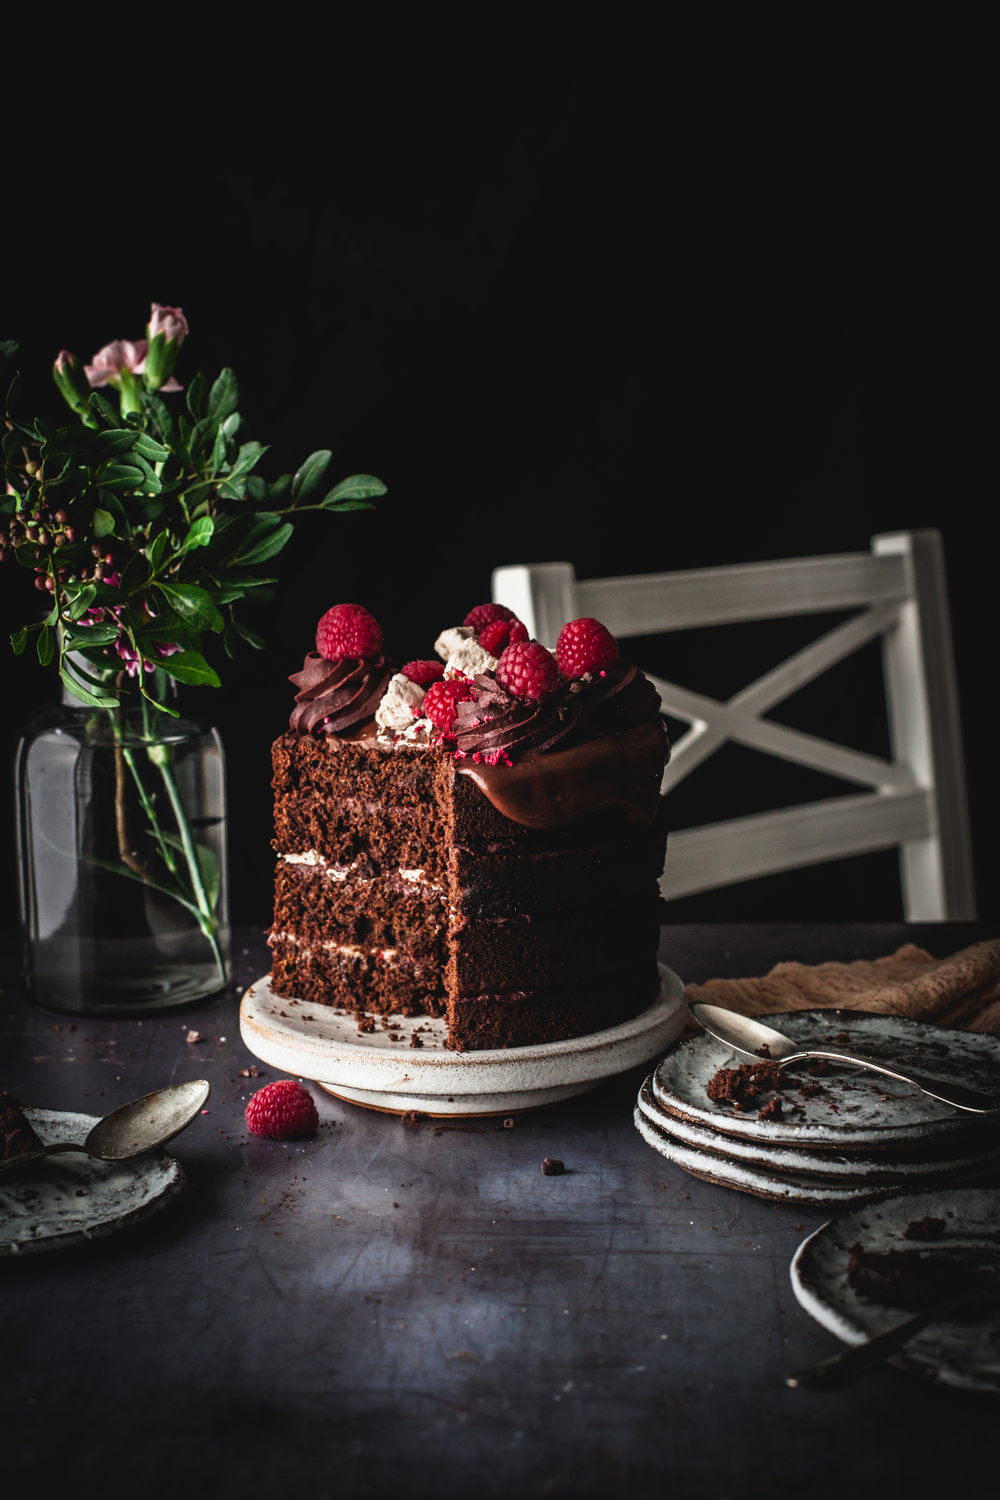 Raspberry Chocolate Cake with Marshmallow Dripping